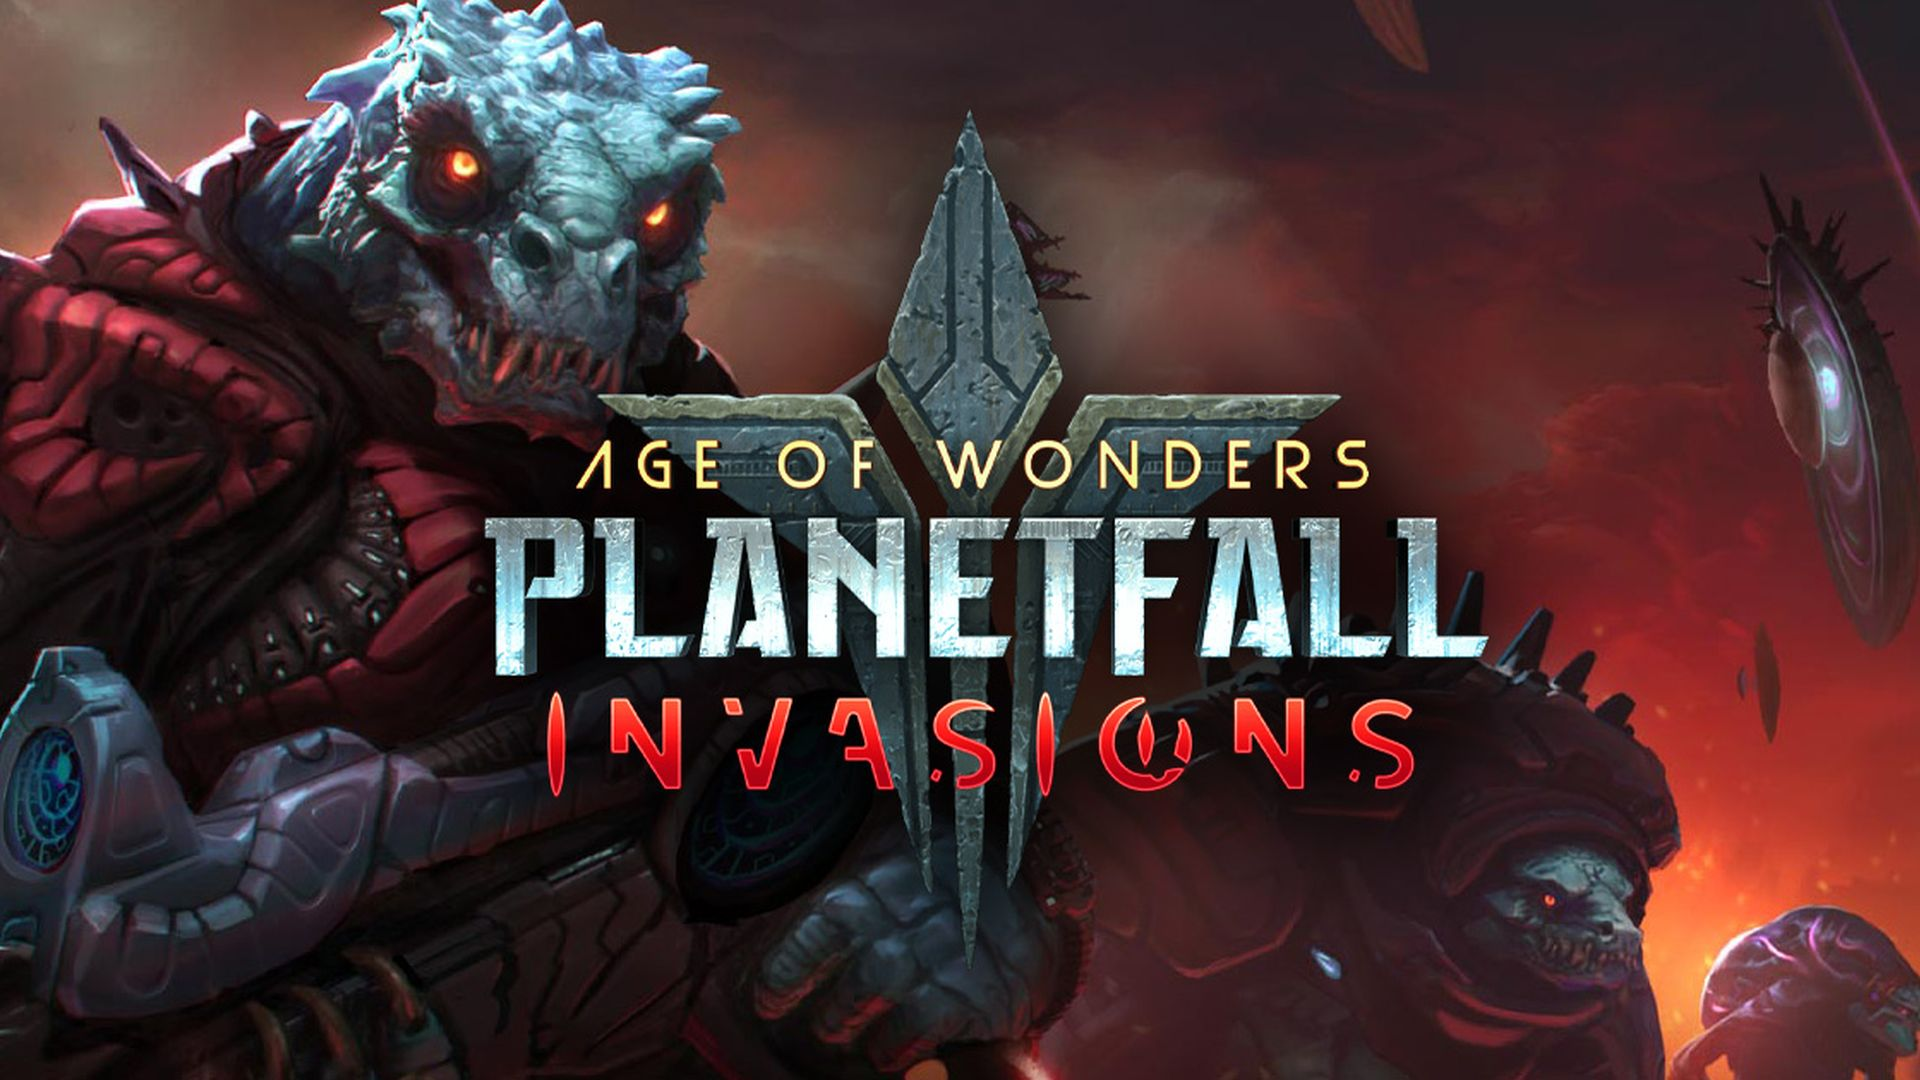 Age of Wonders - Planetfall - Invasions_01